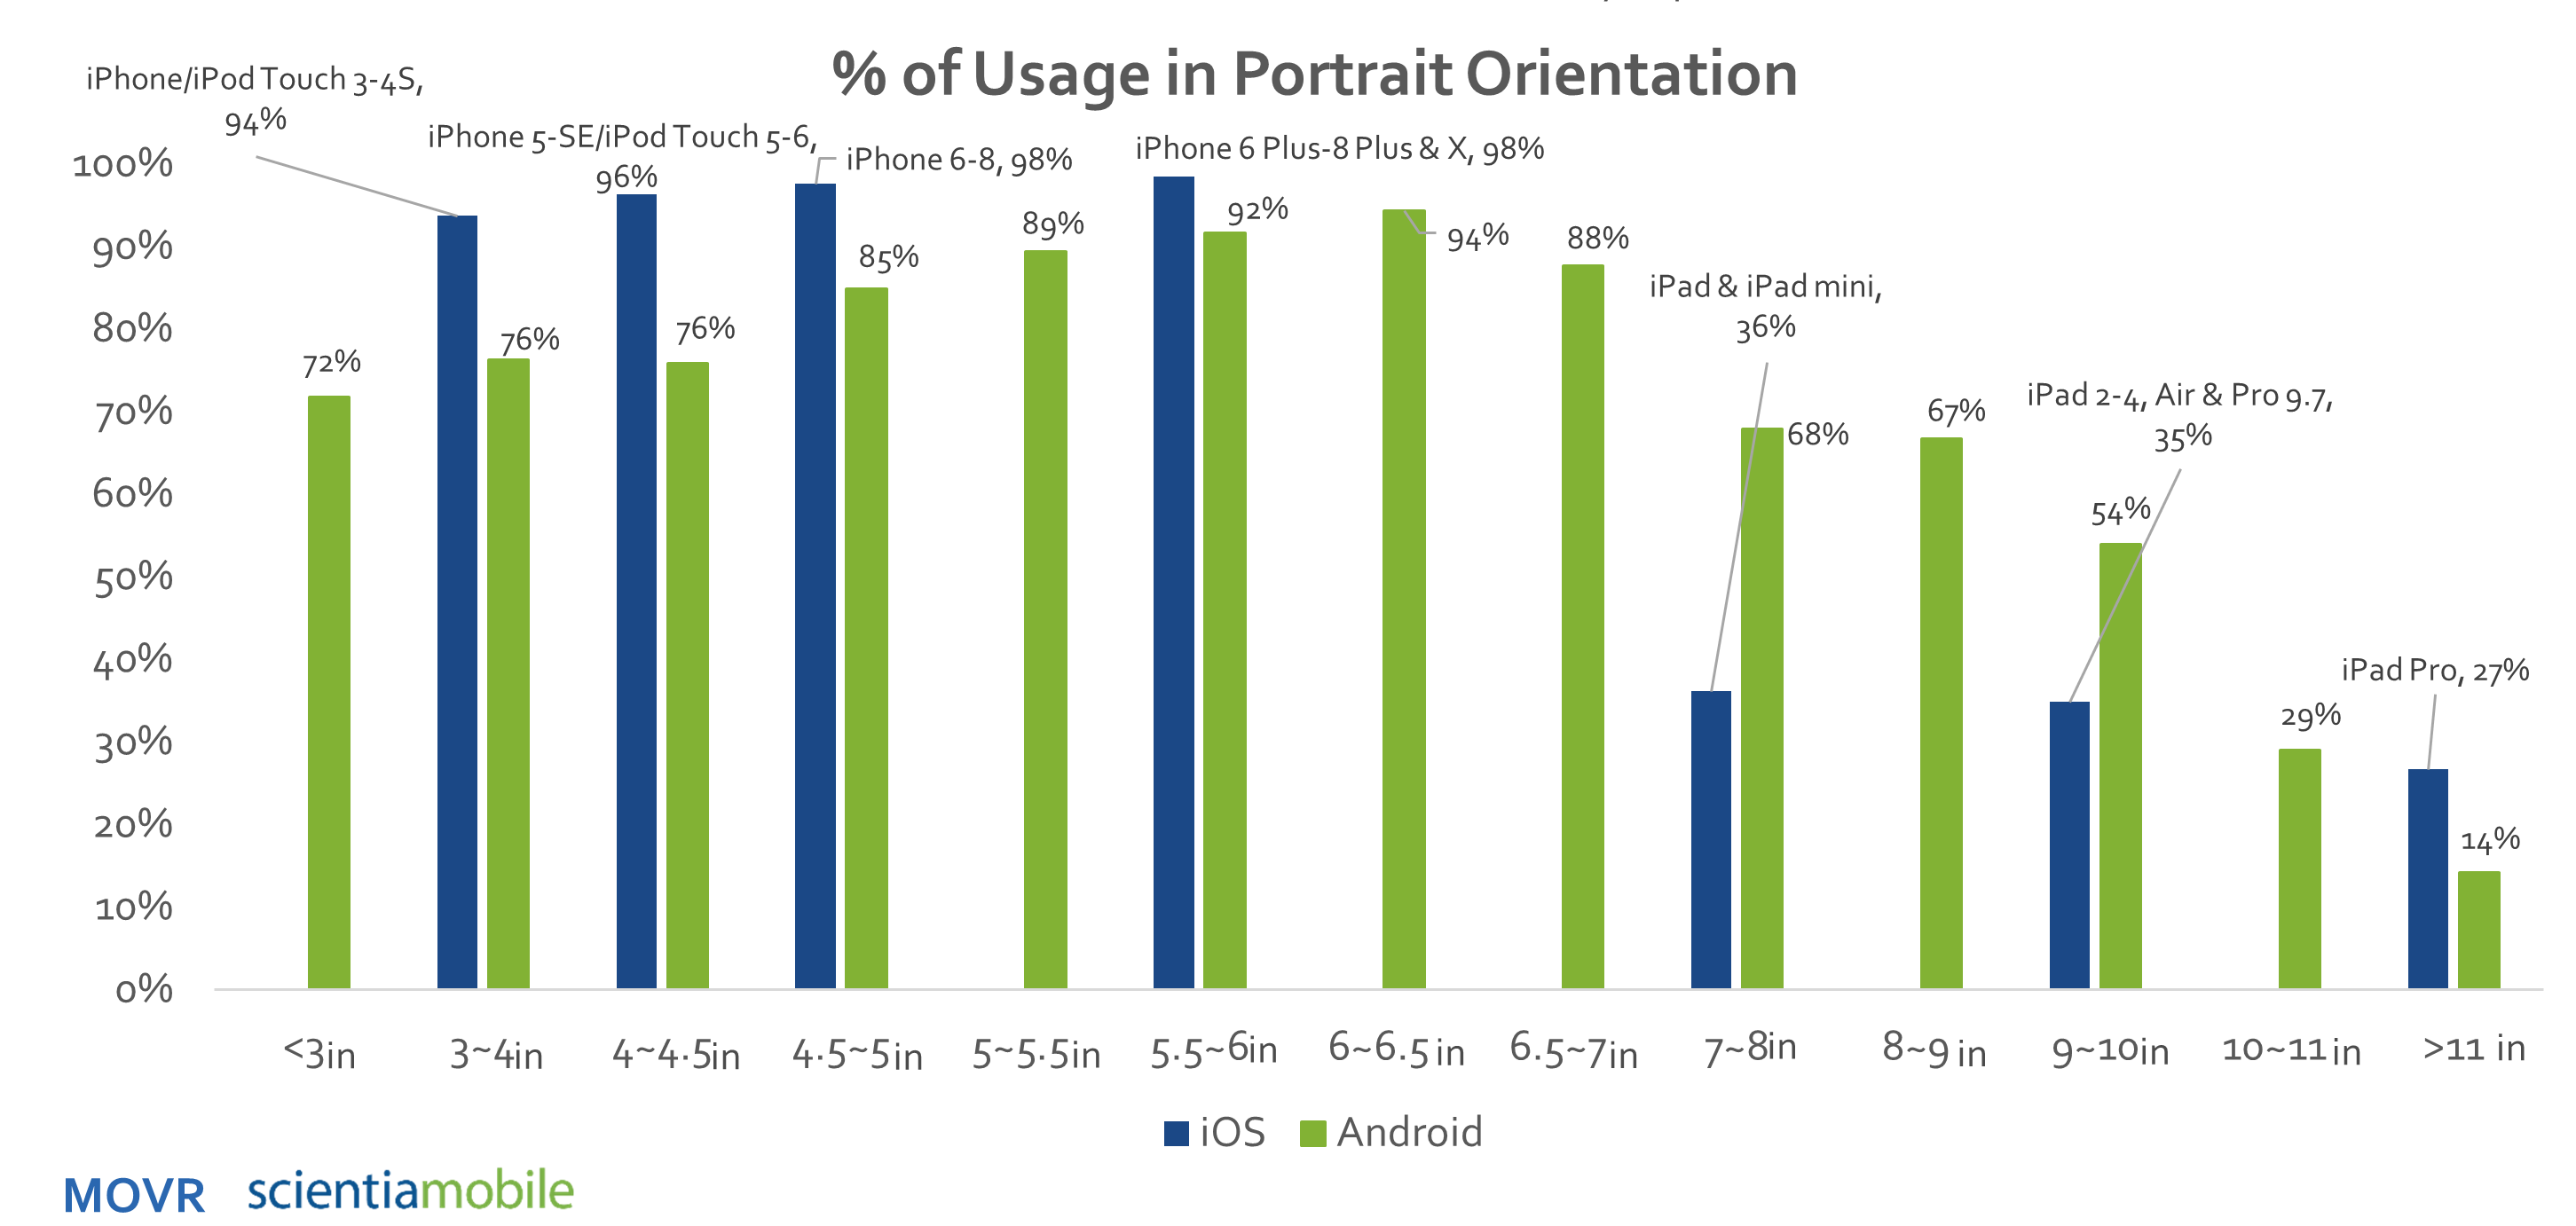 Smartphone and Tablet Portrait Orientation Usage 2017 Q3